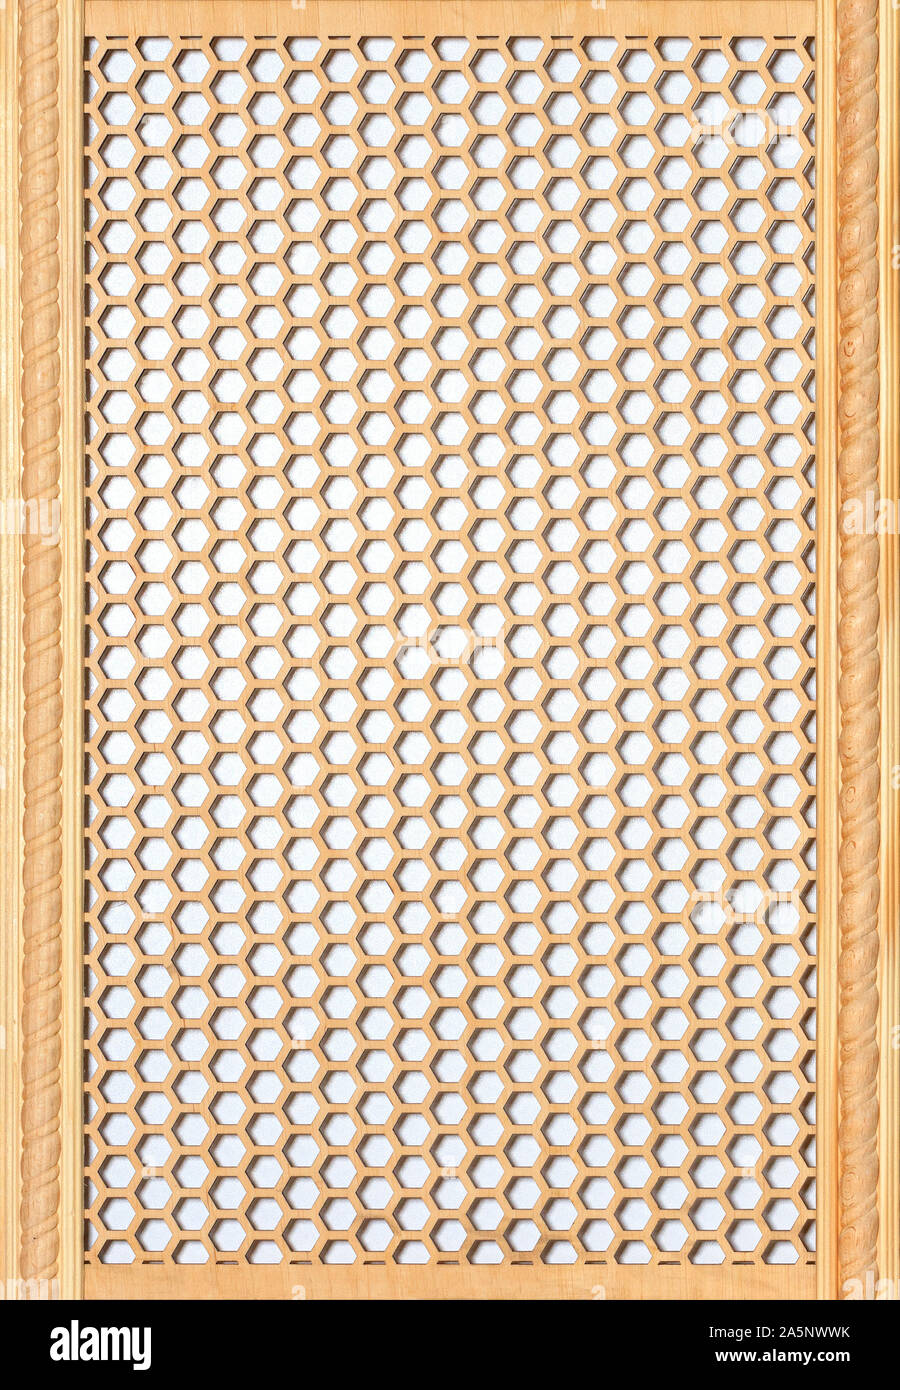 Wooden threaded figured panel with a pattern of the oriental style. Wood wall art, for wall decoration. Stock Photo